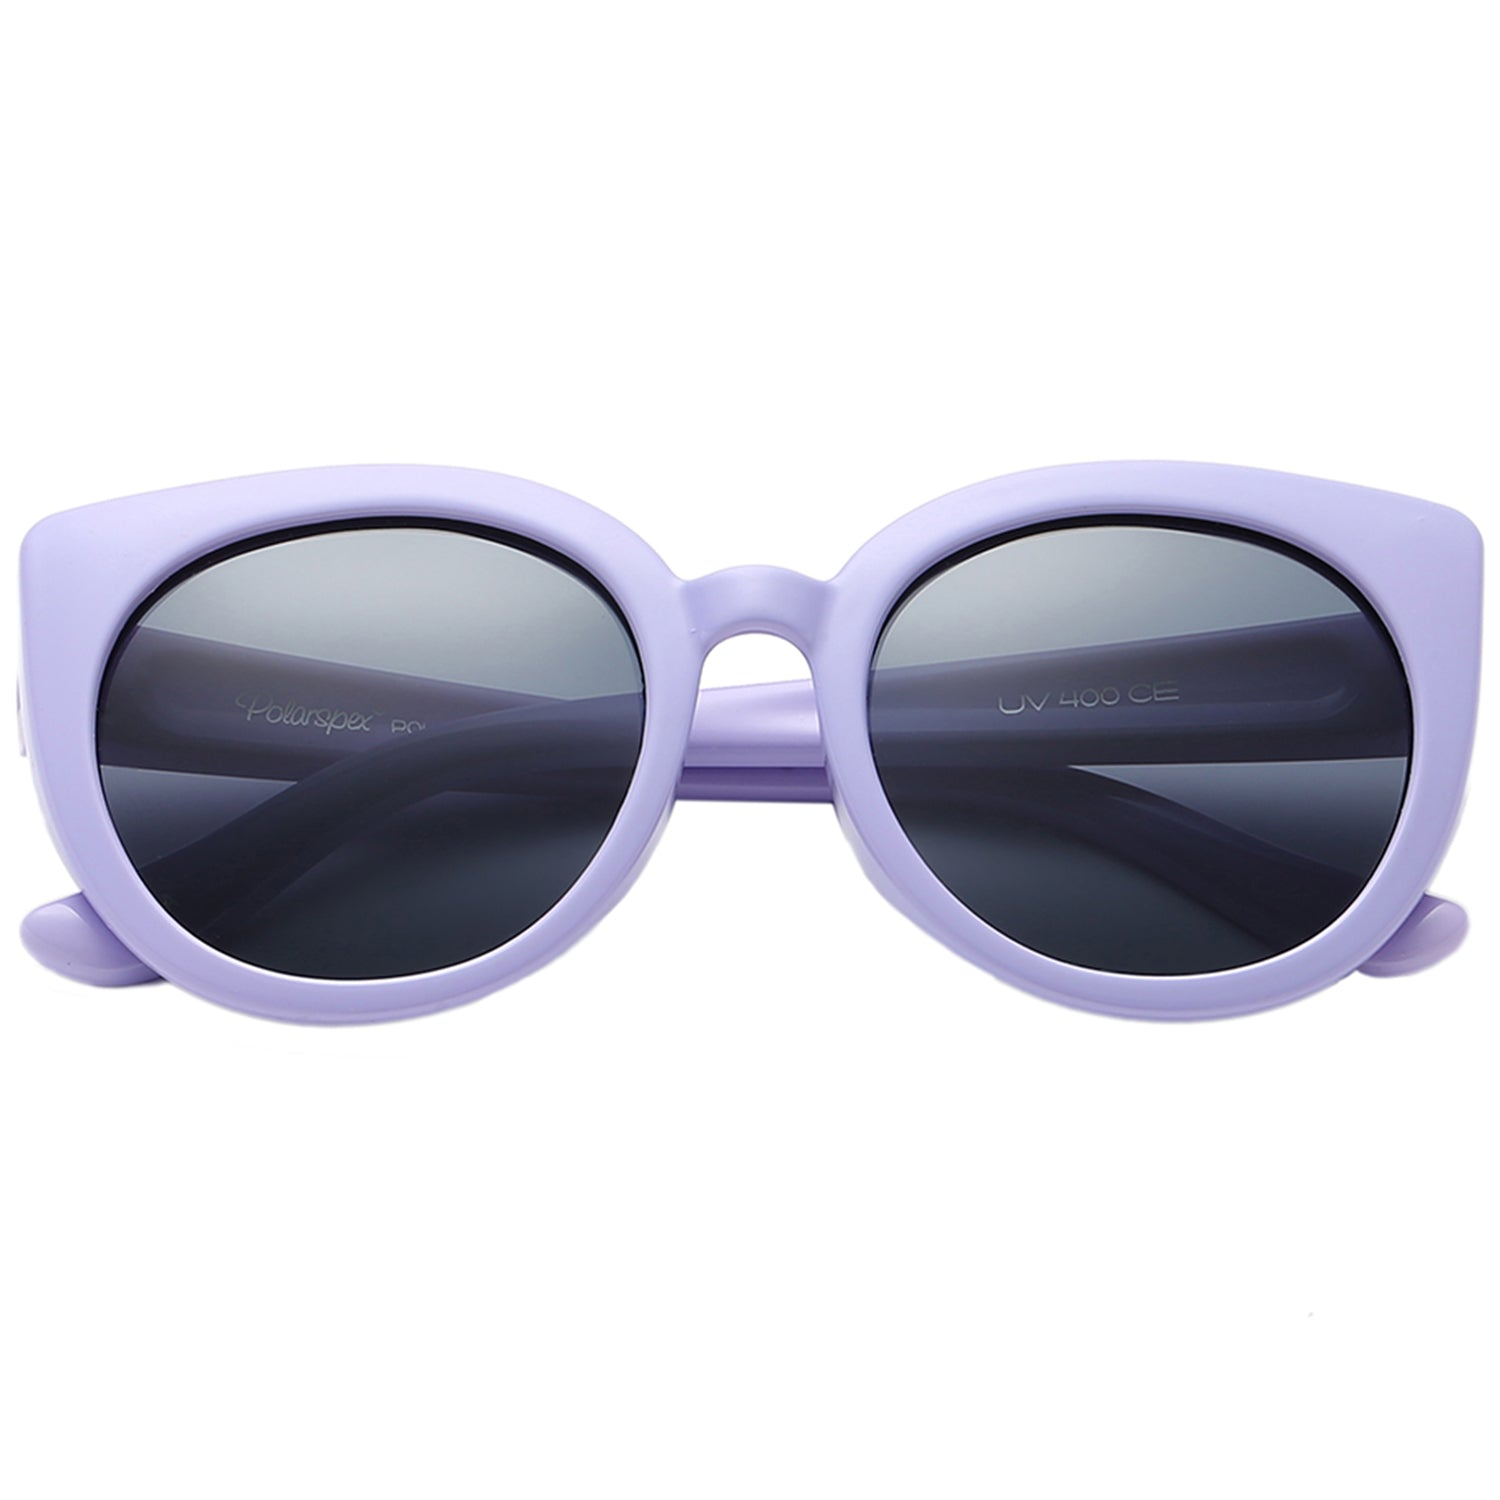 Polarspex Polarized Elastic Cateyes Style (BPA Free) Kids Sunglasses with Purple Lavender Frames and Polarized Smoke Lenses for Girls (Ages 2 - 8)